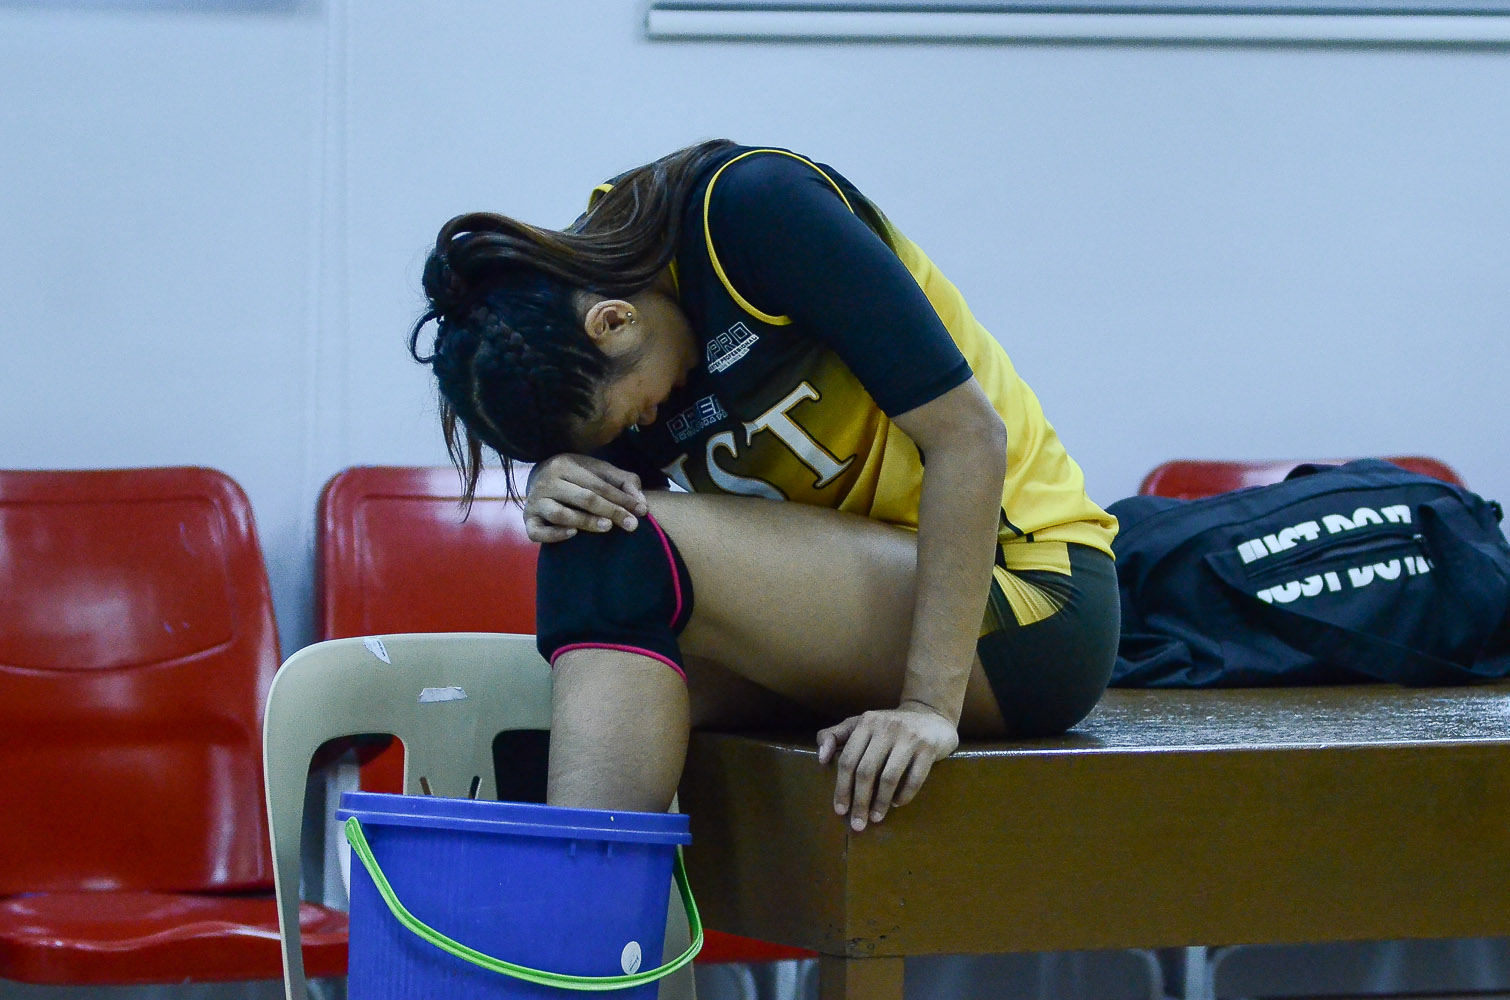 Tiebreaker Times Ysa Jimenez suffers ankle sprain News PVL UST Volleyball  Ysa Jimenez UST Women's Volleyball Kungfu Reyes 2019 PVL Season 2019 PVL Collegiate Conference